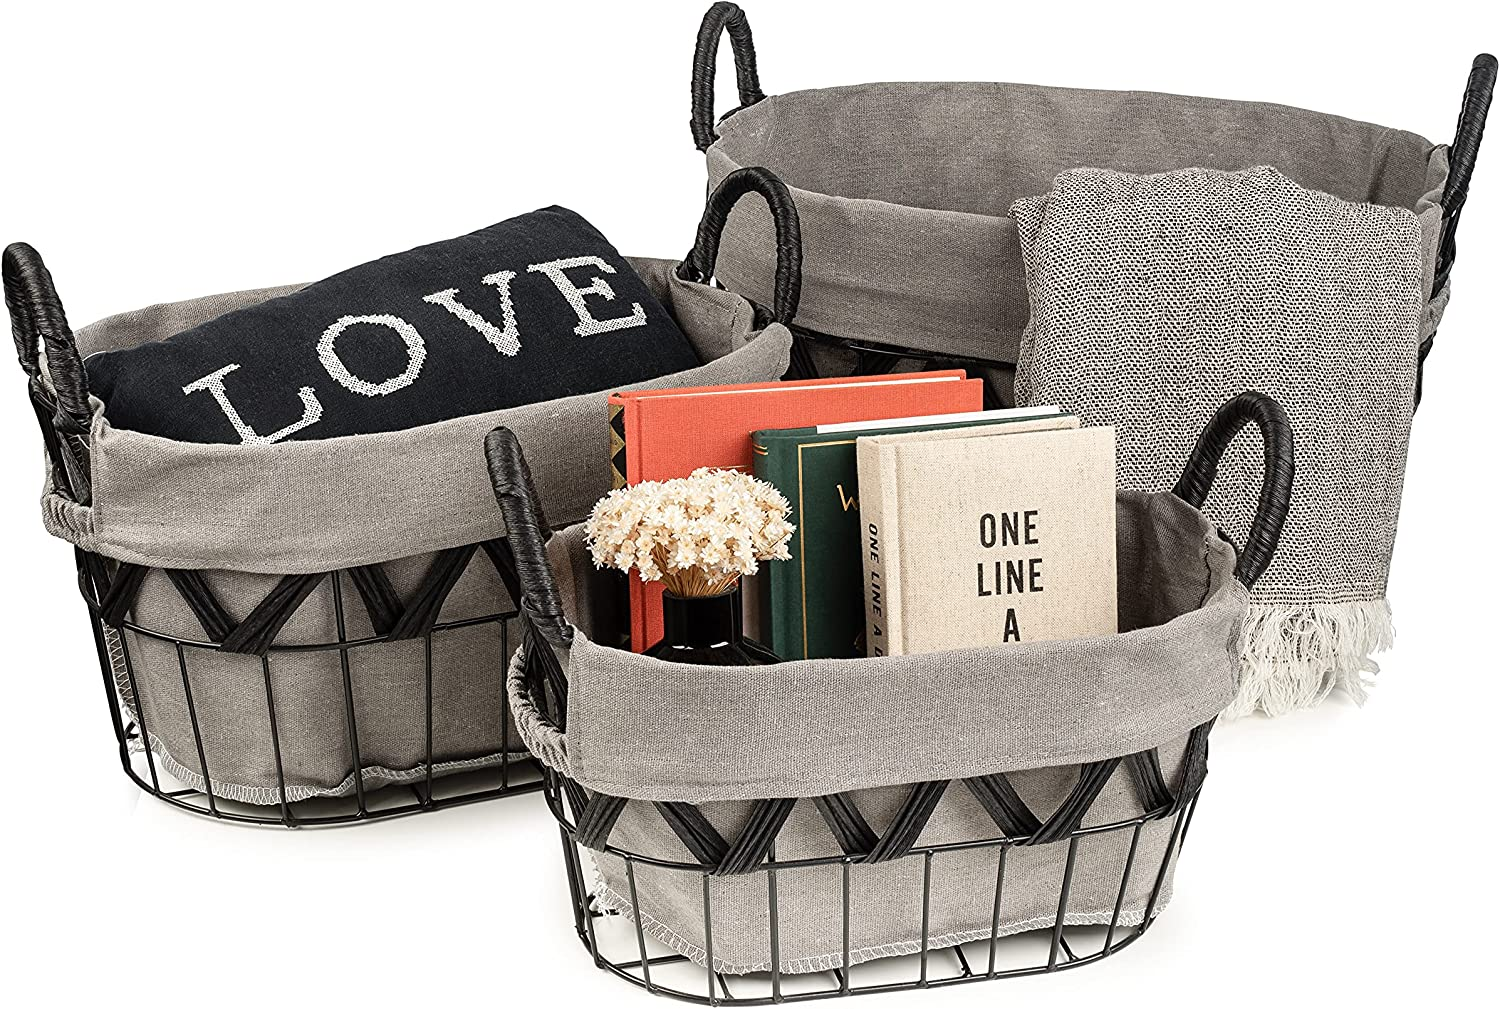 Sorbus Wire Storage Baskets Set Decorative with Removable Fabric Liner, Open Home Décor Farmhouse Metal Storage Bins & Baskets for Organizing Shelves, Living Room, Bathroom, Kitchen, (Oval - White)